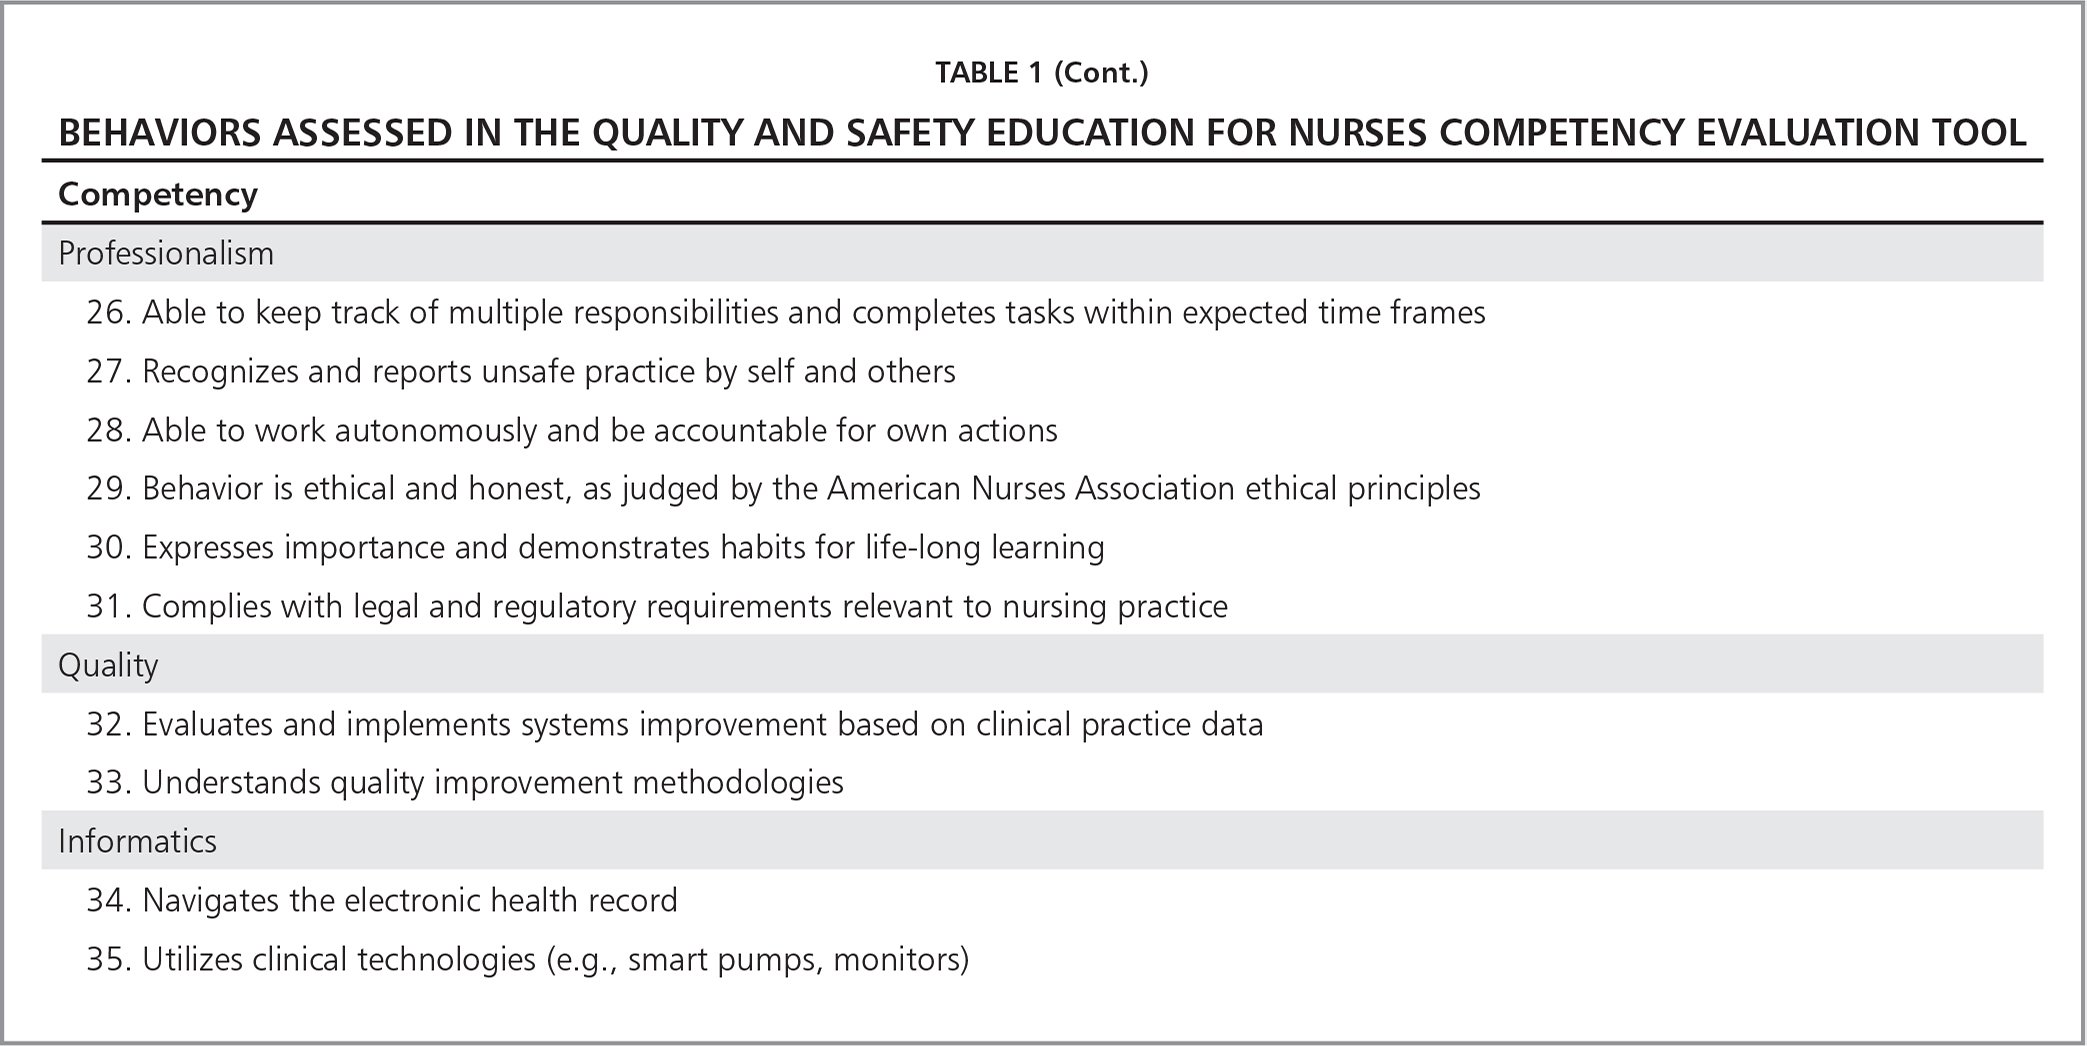 Behaviors Assessed in the Quality and Safety Education for Nurses Competency Evaluation Tool